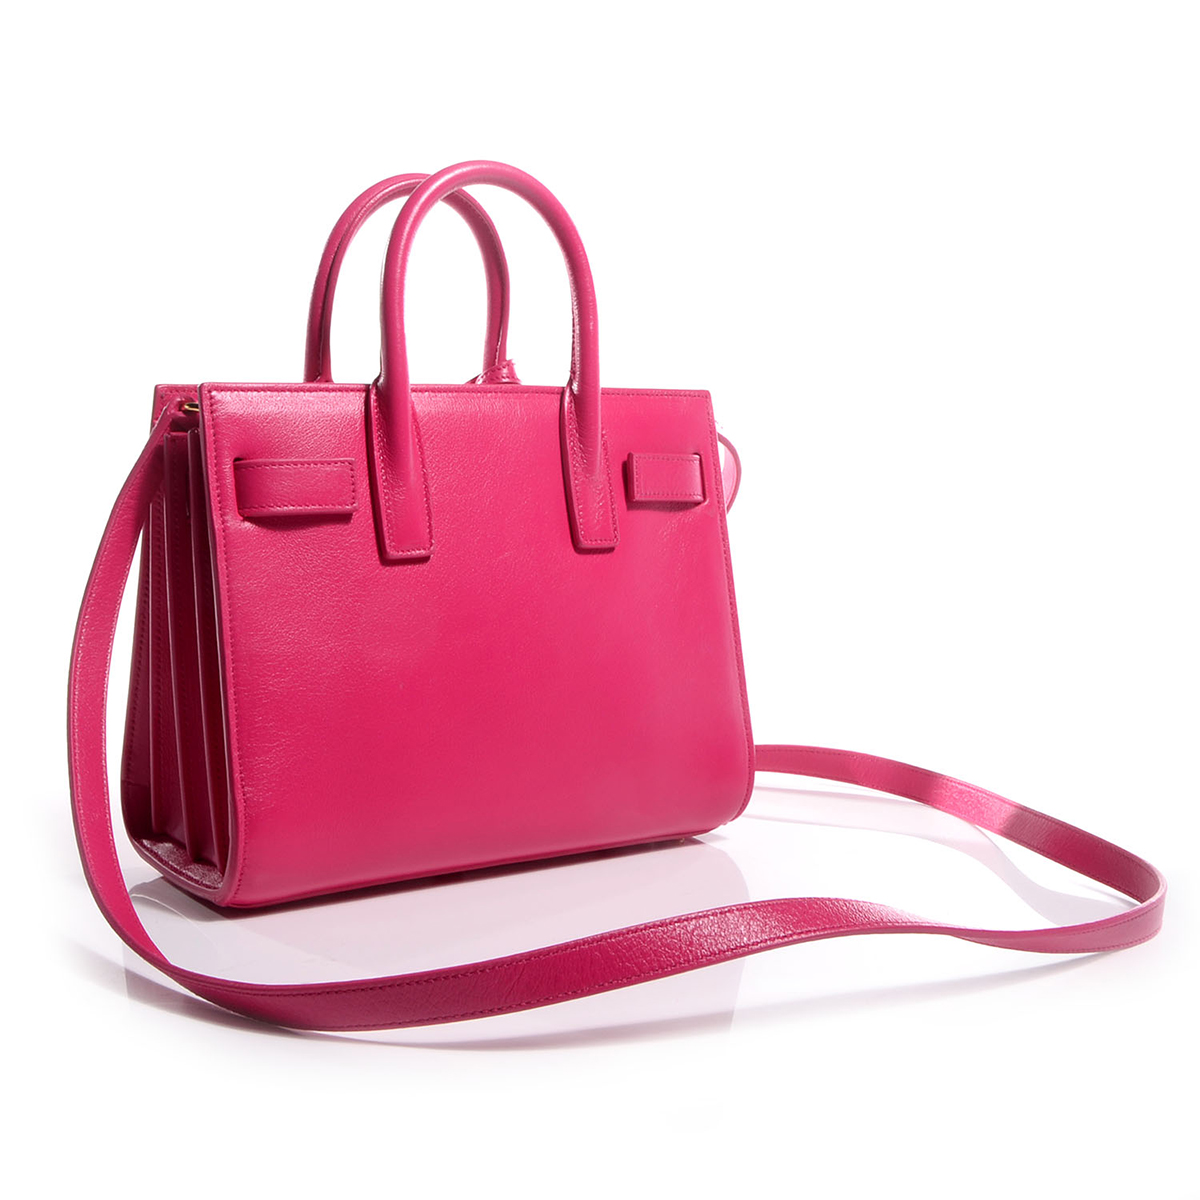 Image result for Saint Laurent Fuchsia Pink Calf Leather Classic Small Sac De Jour Satchel Bag